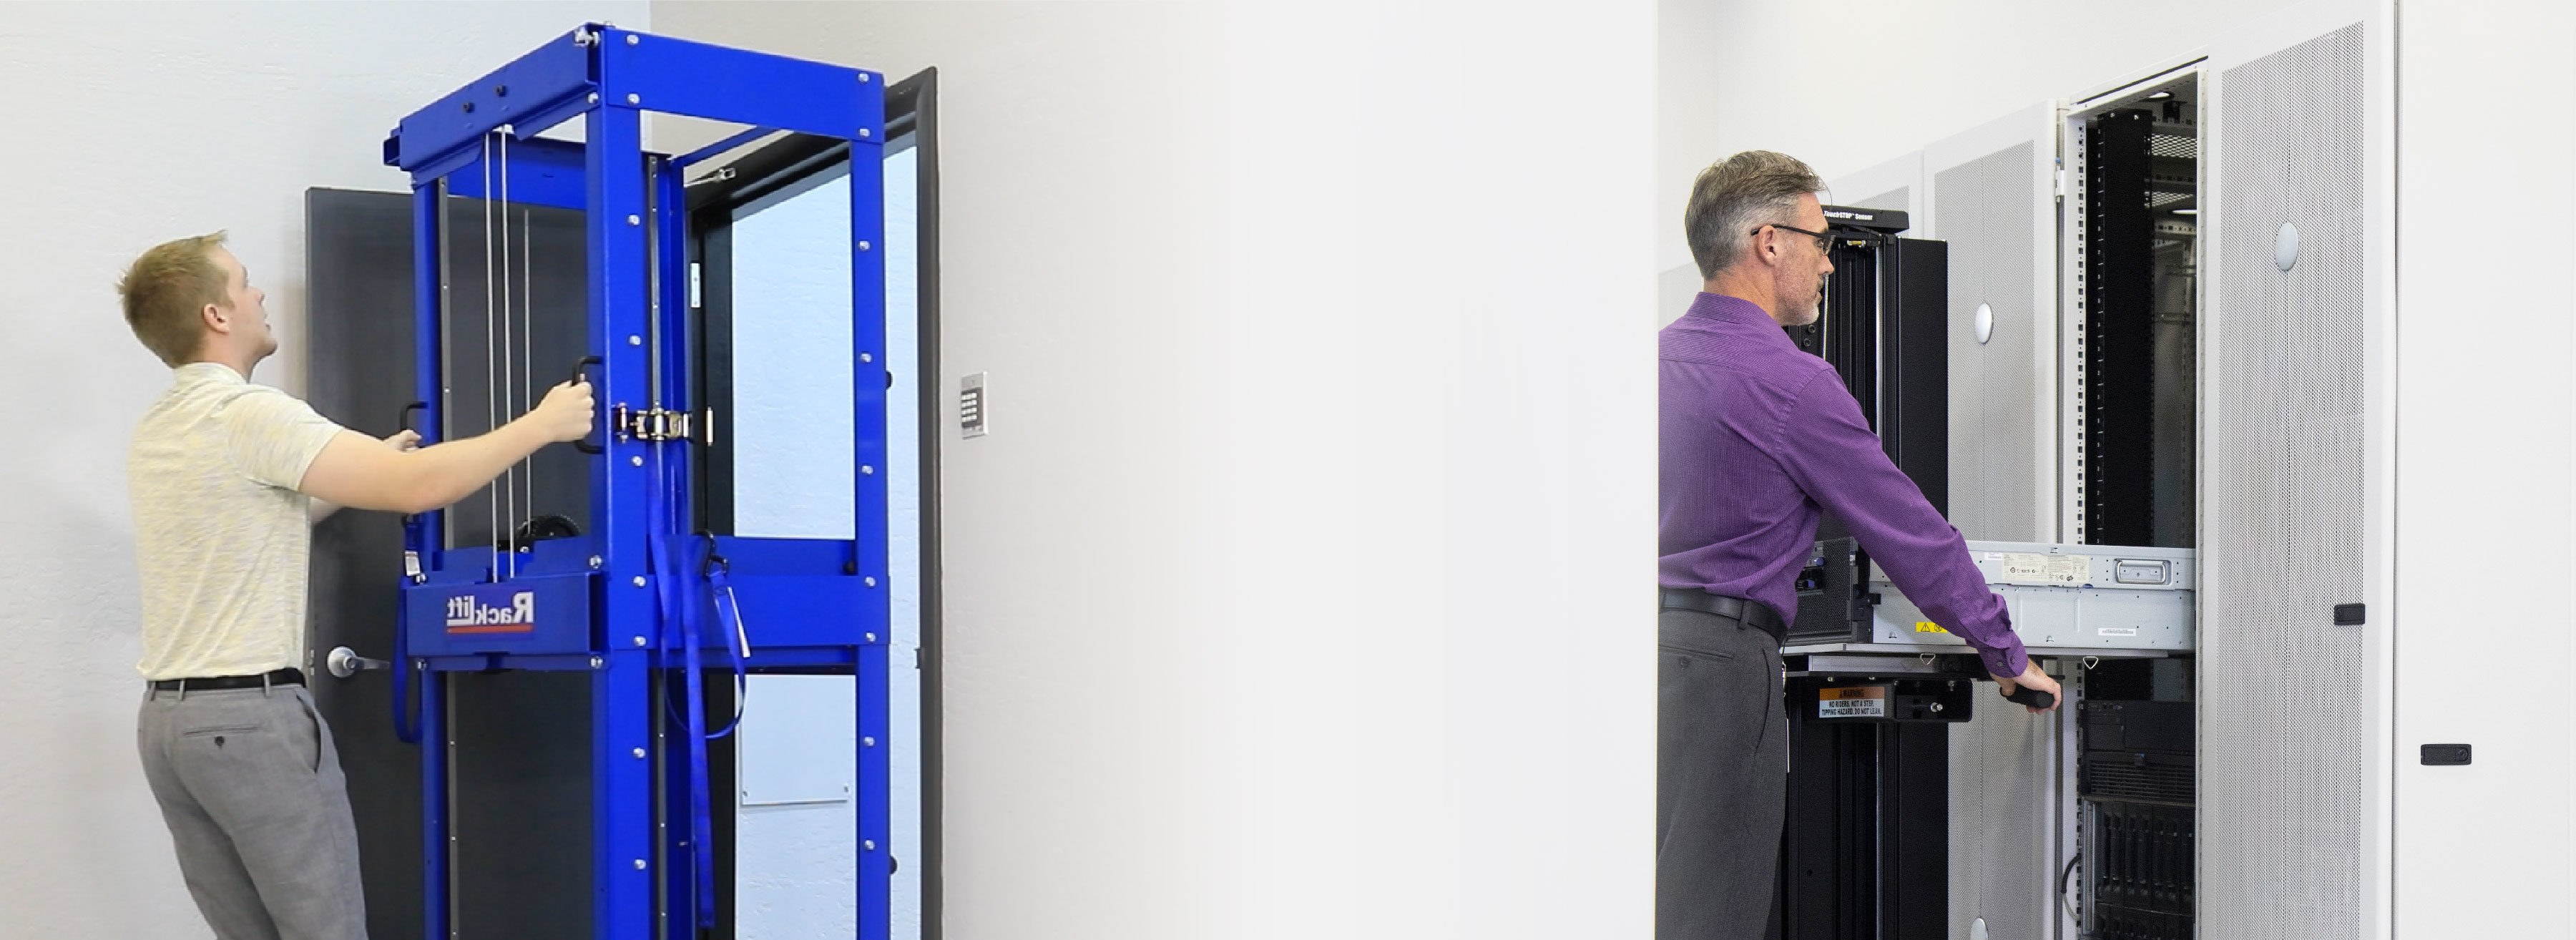 data center equipment safety matters